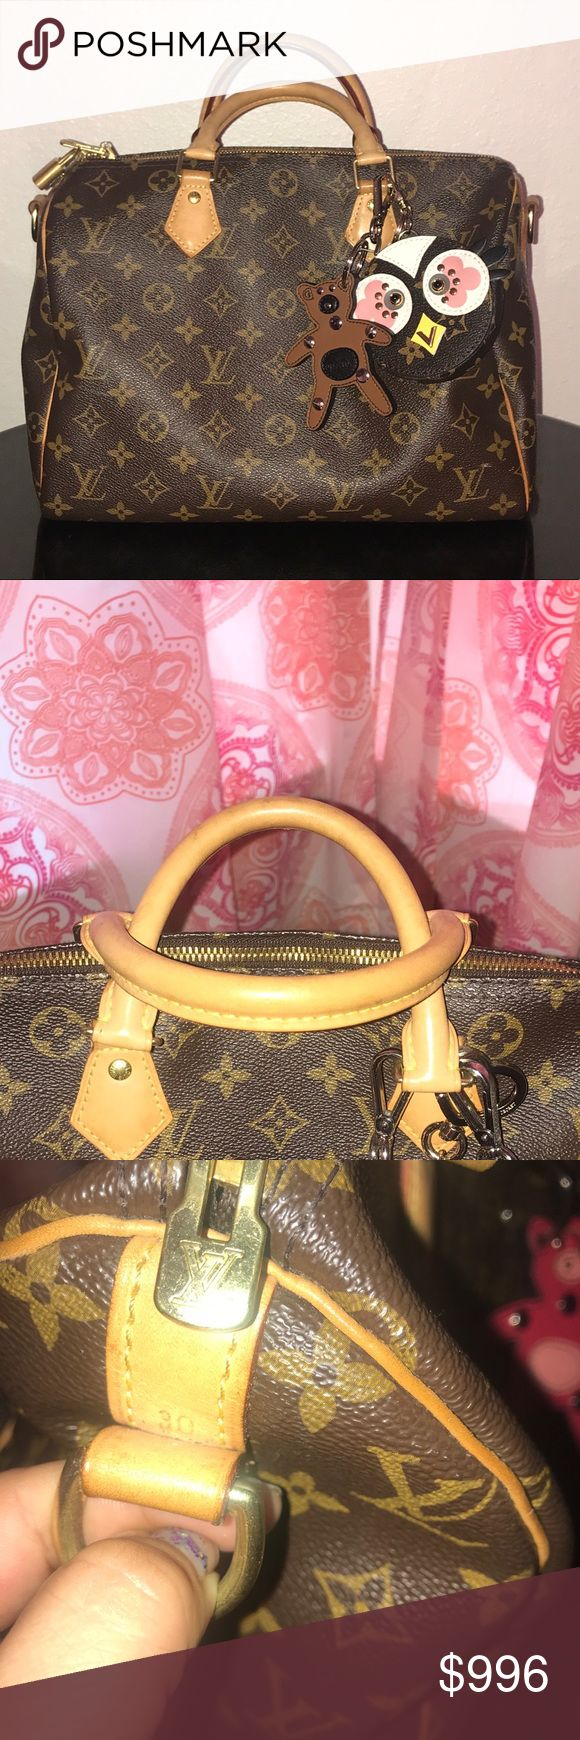 💗FINAL PRICE💗LV SPEEDY BANDOULIERE 30 MONO CA💗 USED JUST 1 MONTH... ITS NOT INCLUDES THE STRAP Louis Vuitton Bags